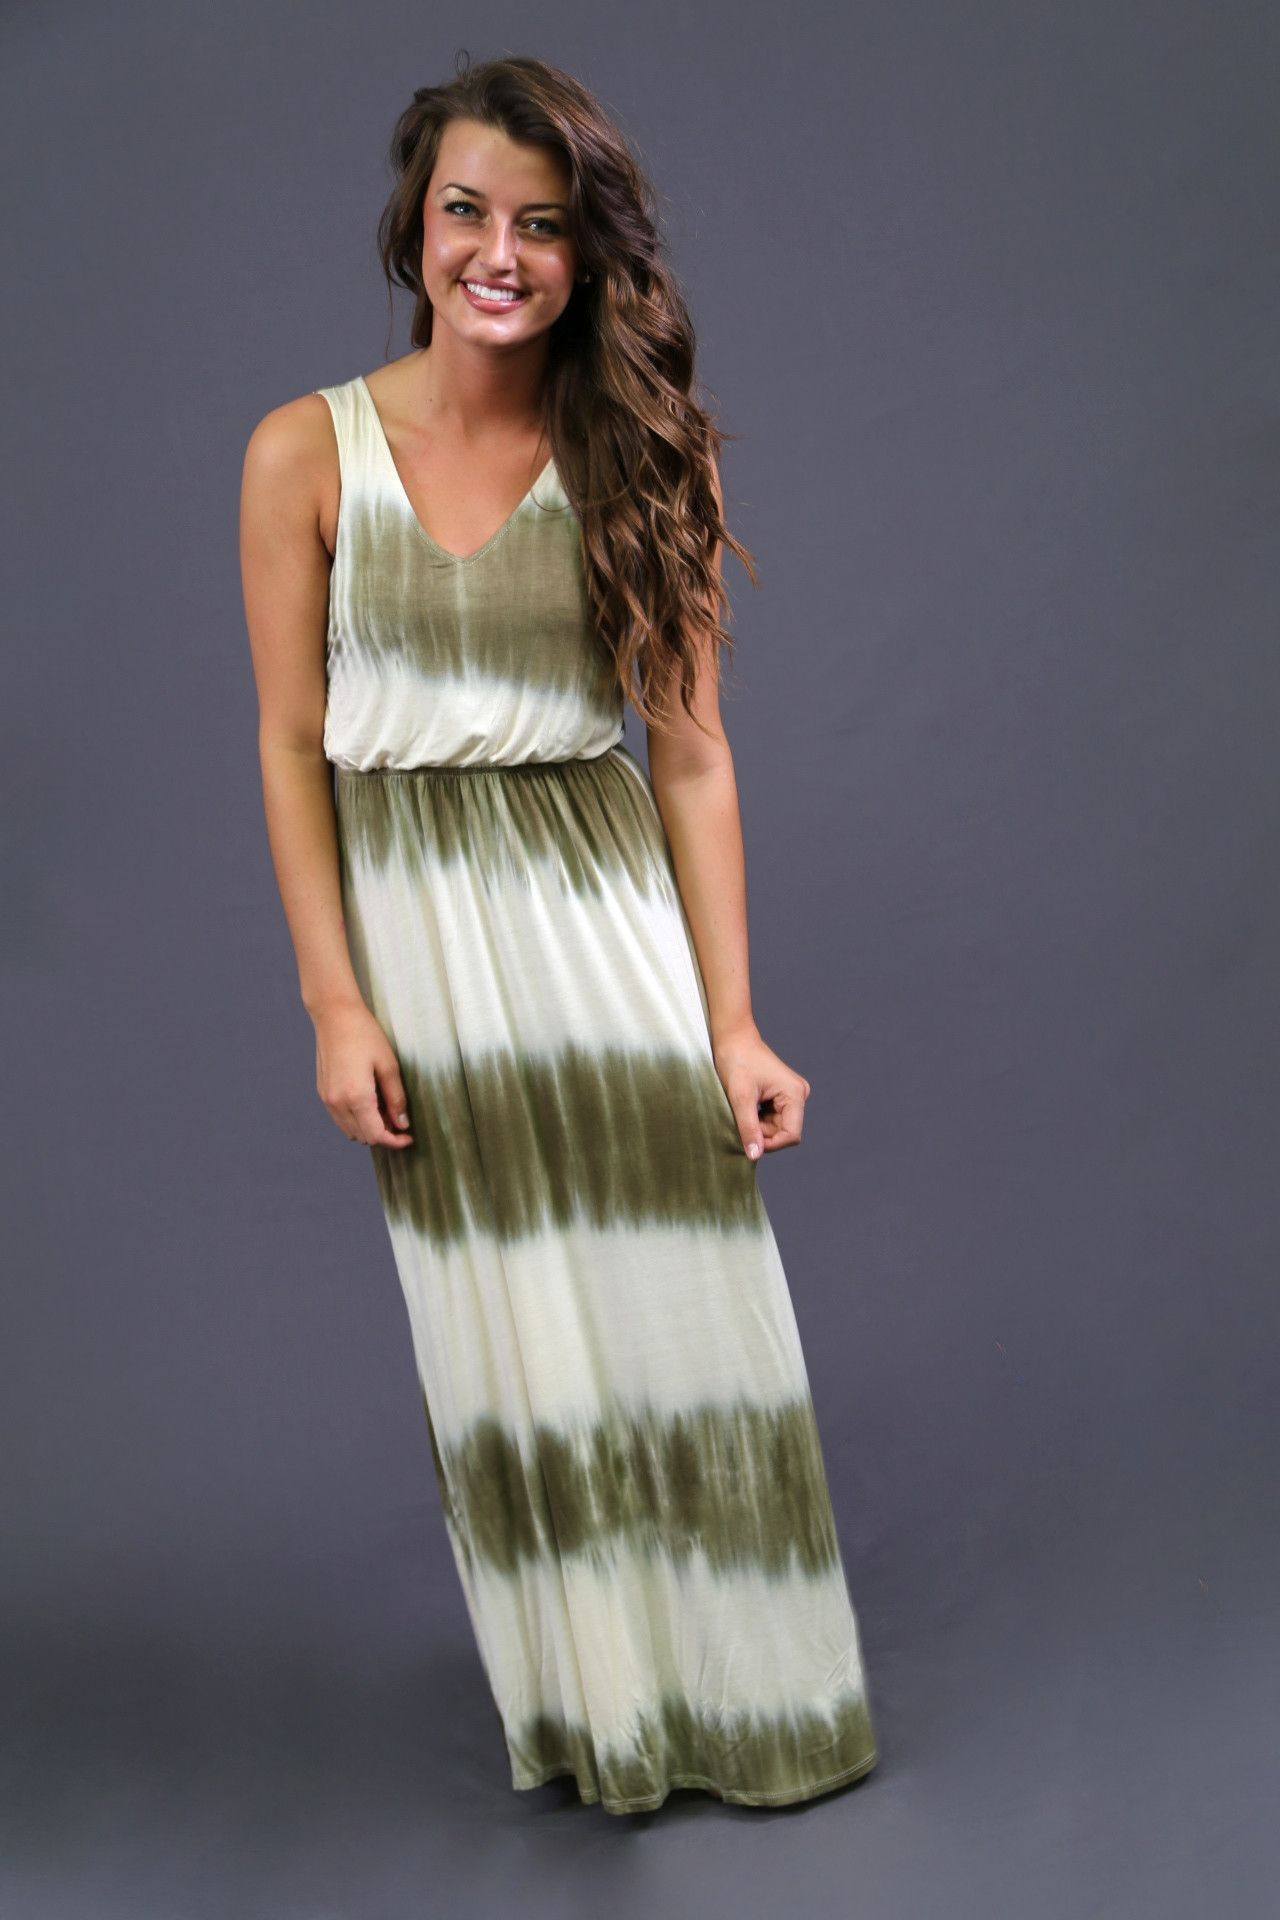 I have no need for this dress but I WANT IT!!!  Too bad my bday has already passed.